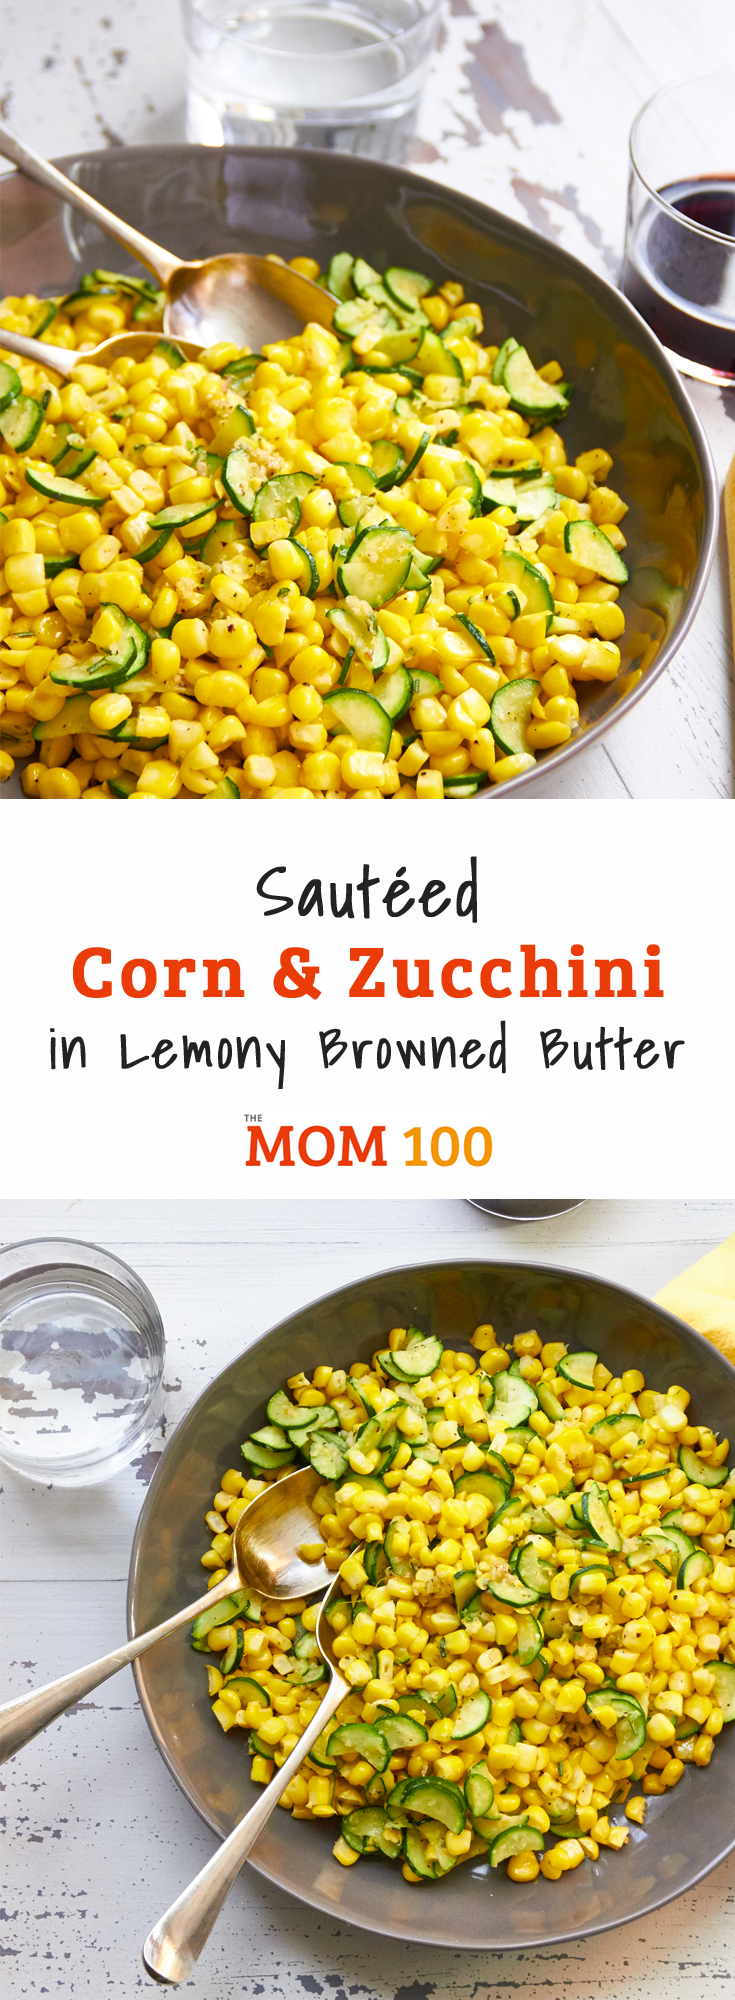 This simple Sautéed Corn and Zucchini in Lemony Browned Butter is a perfect summer side dish, especially if you can make this with fresh corn.